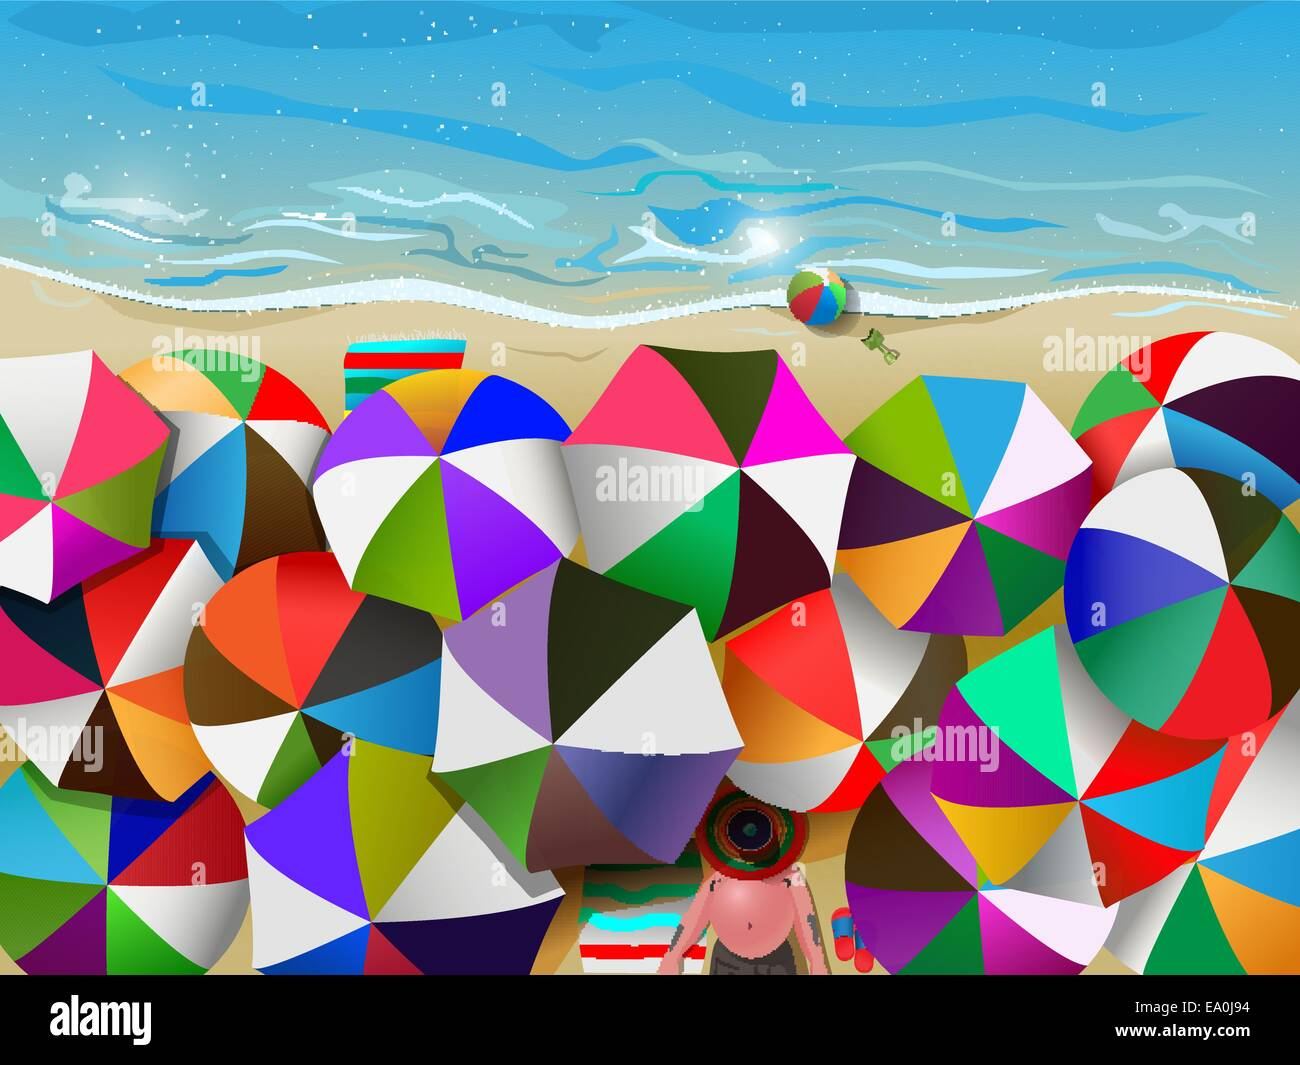 vector illustration of crowded beach full of umbrellas, eps10 file, gradient mesh and transparency used - Stock Vector